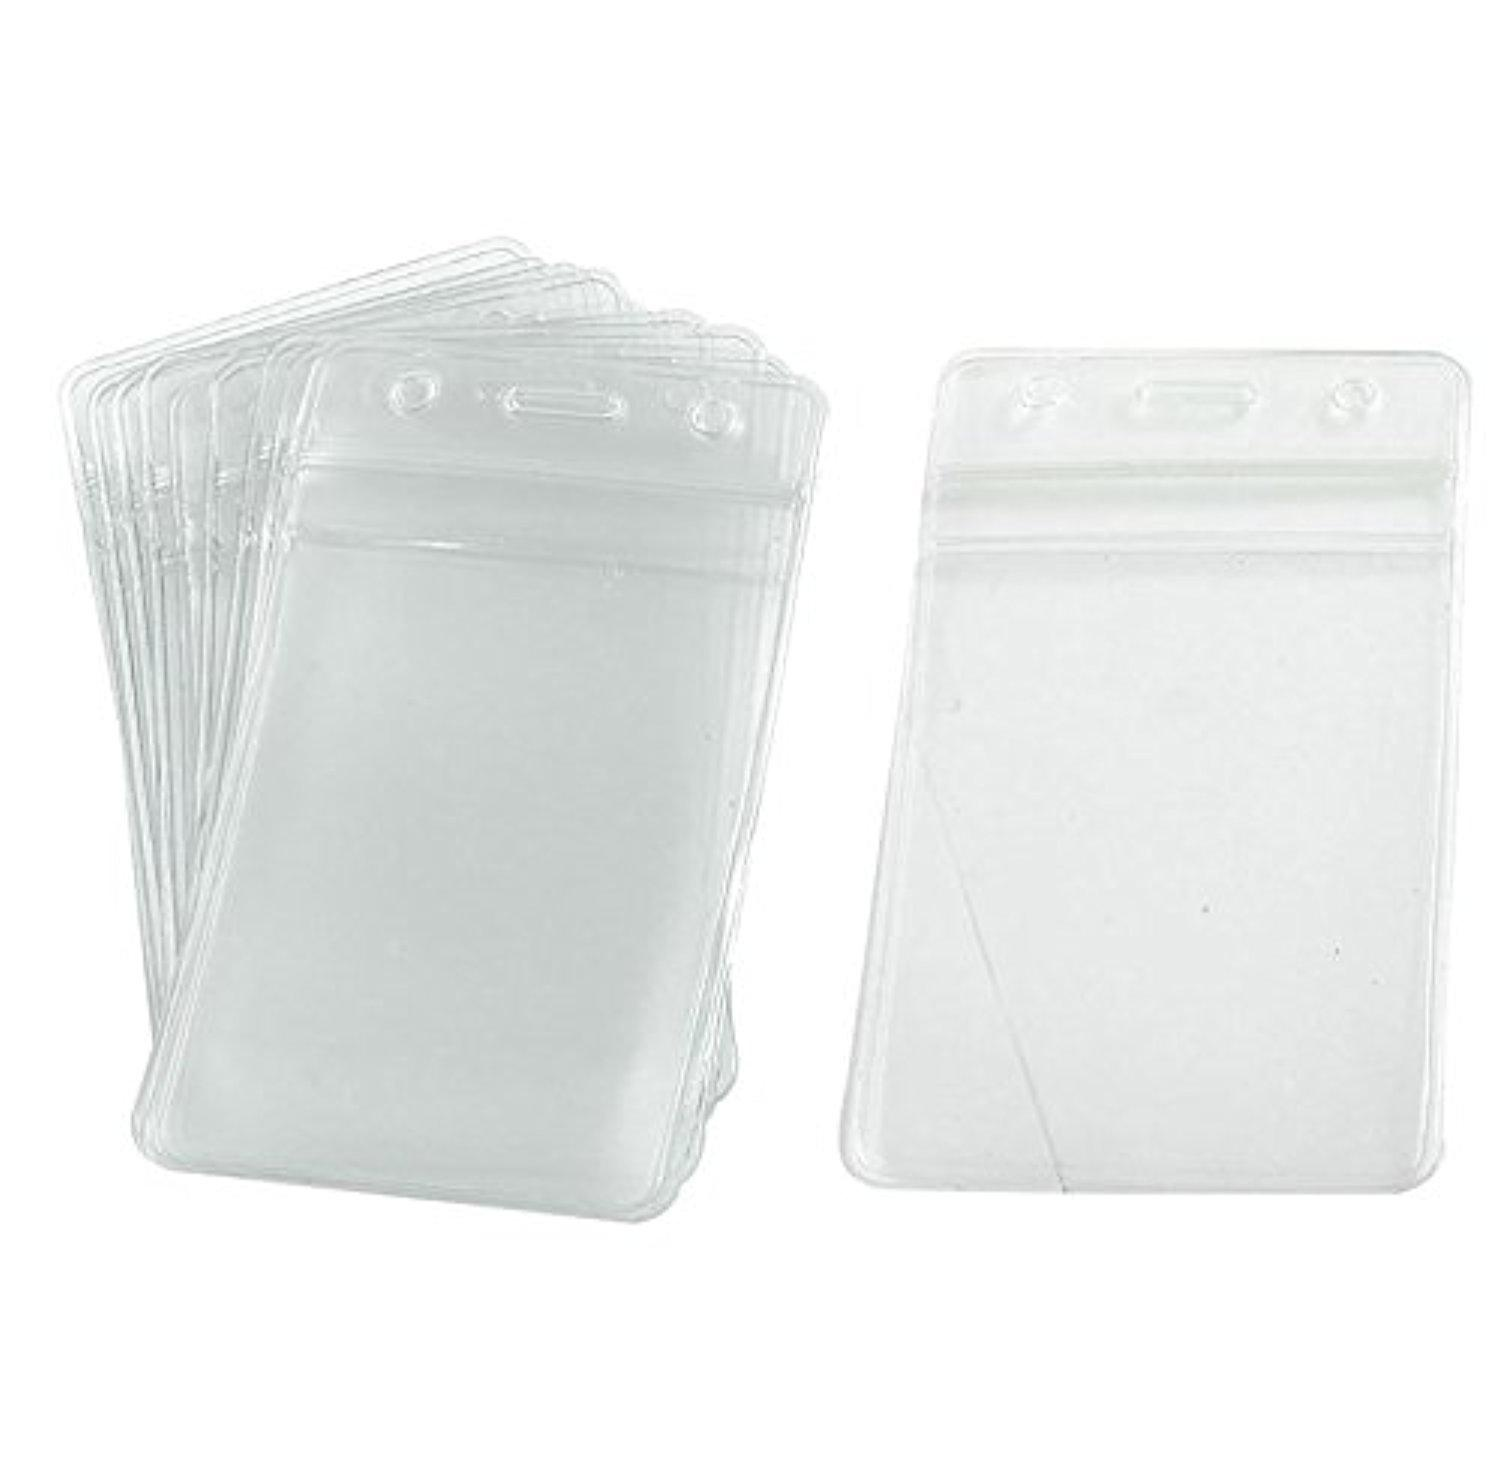 Beautiful Gallery Of Plastic Business Card Holders - Business ...